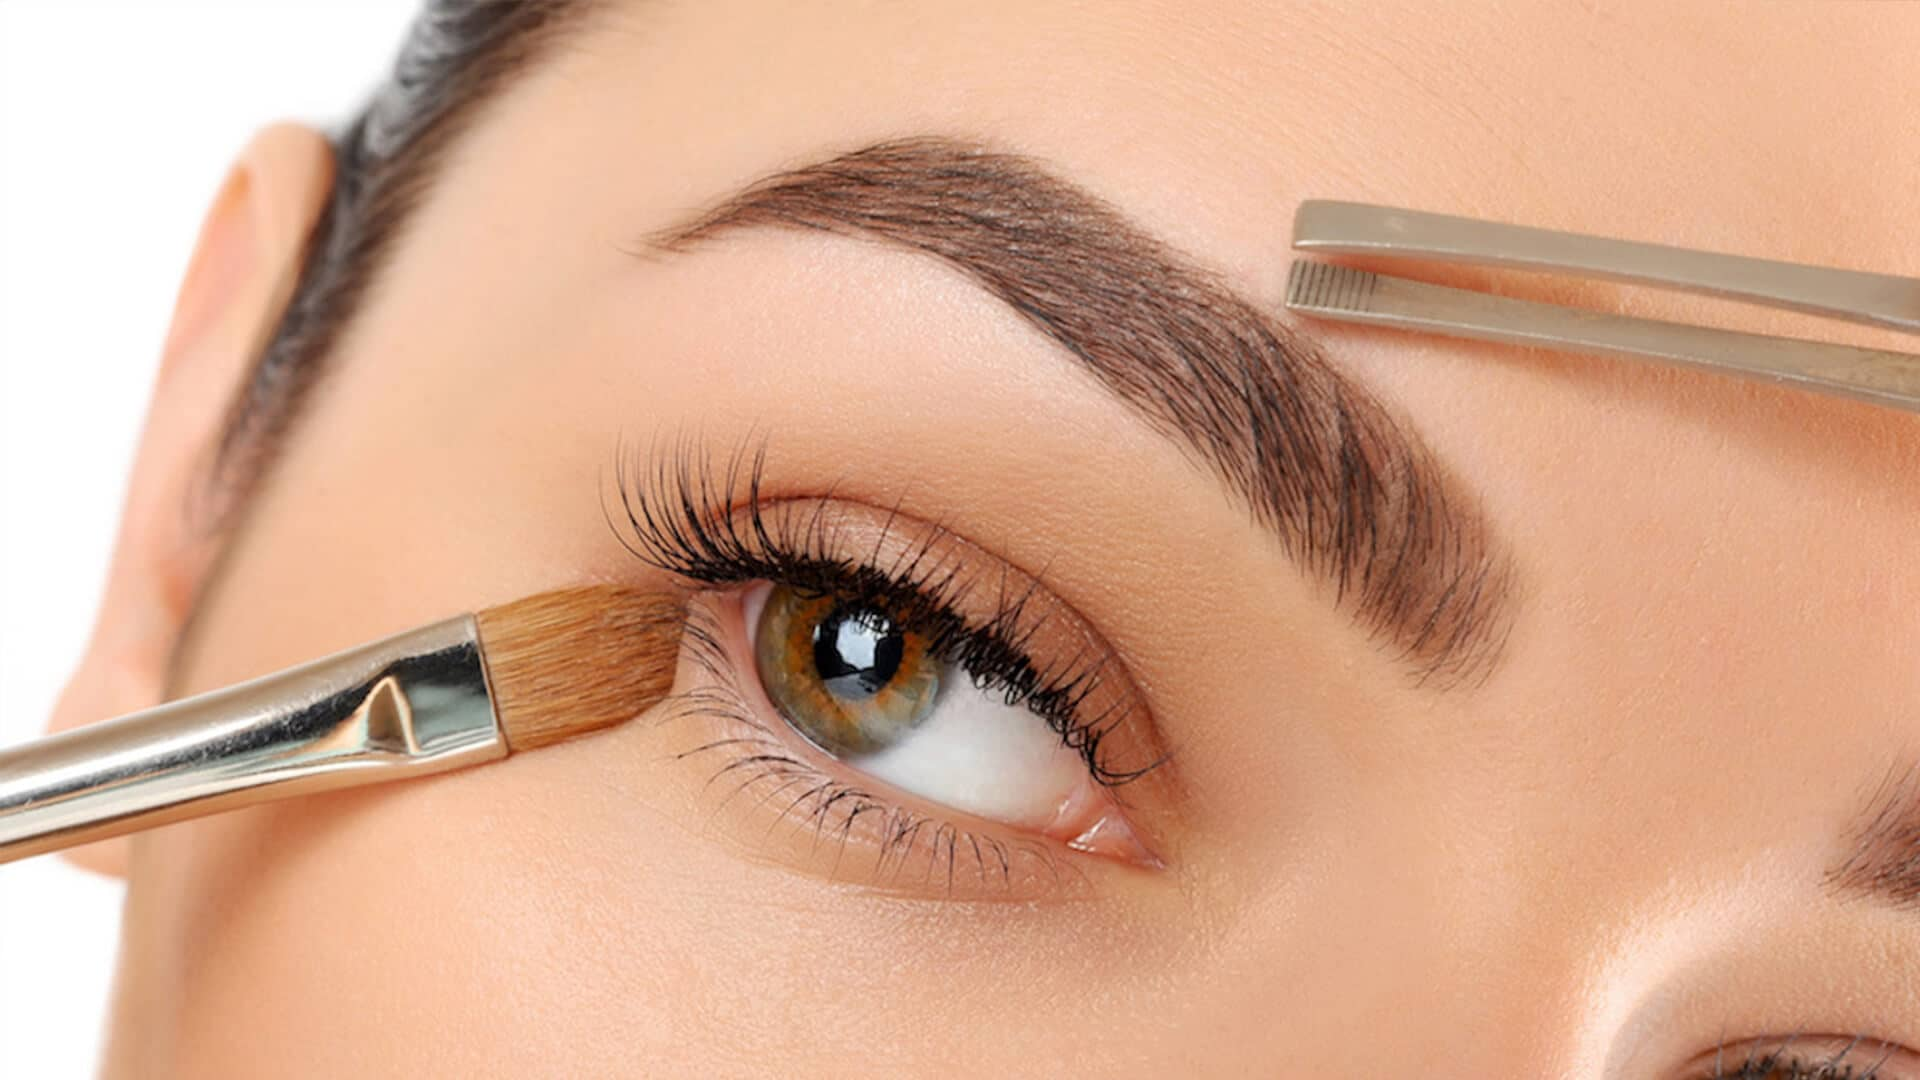 Microblading cost looks little compared to daily expenses